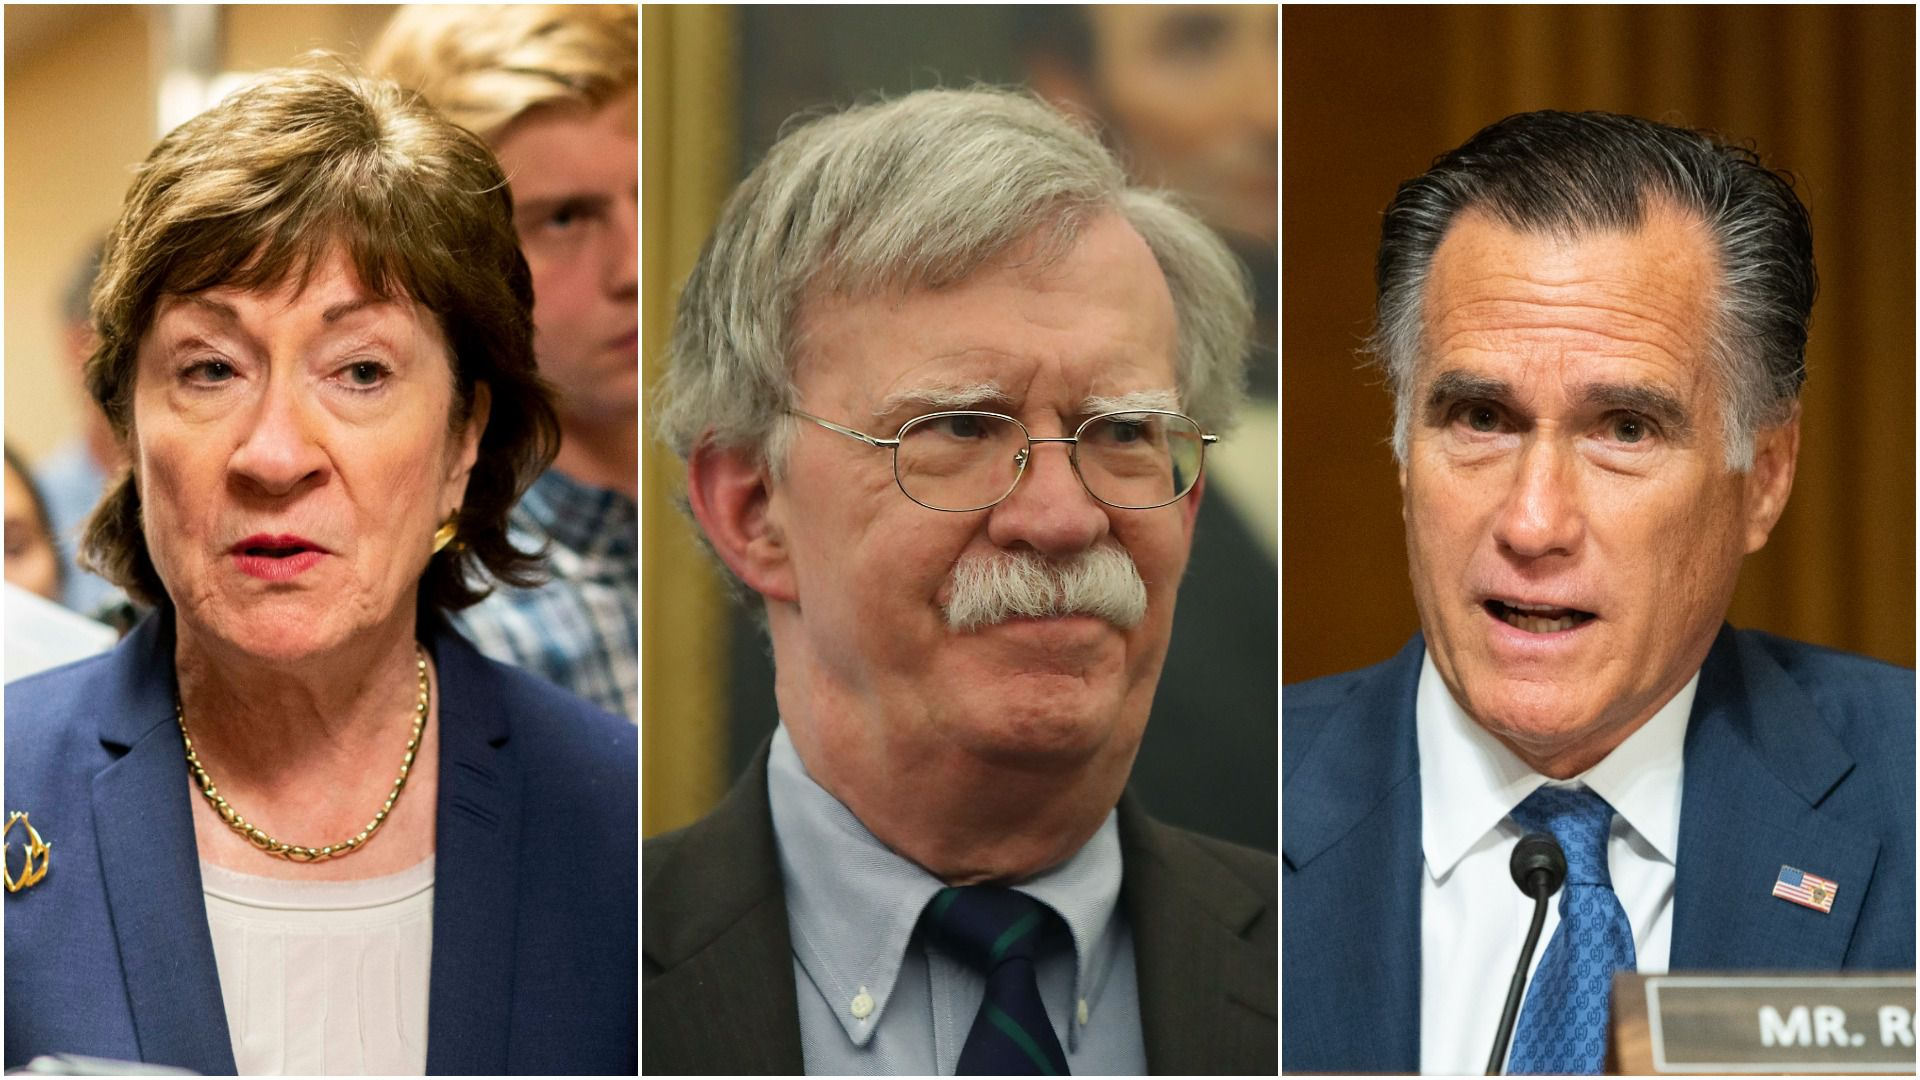 The GOP senators signaling support for witnesses following Bolton report